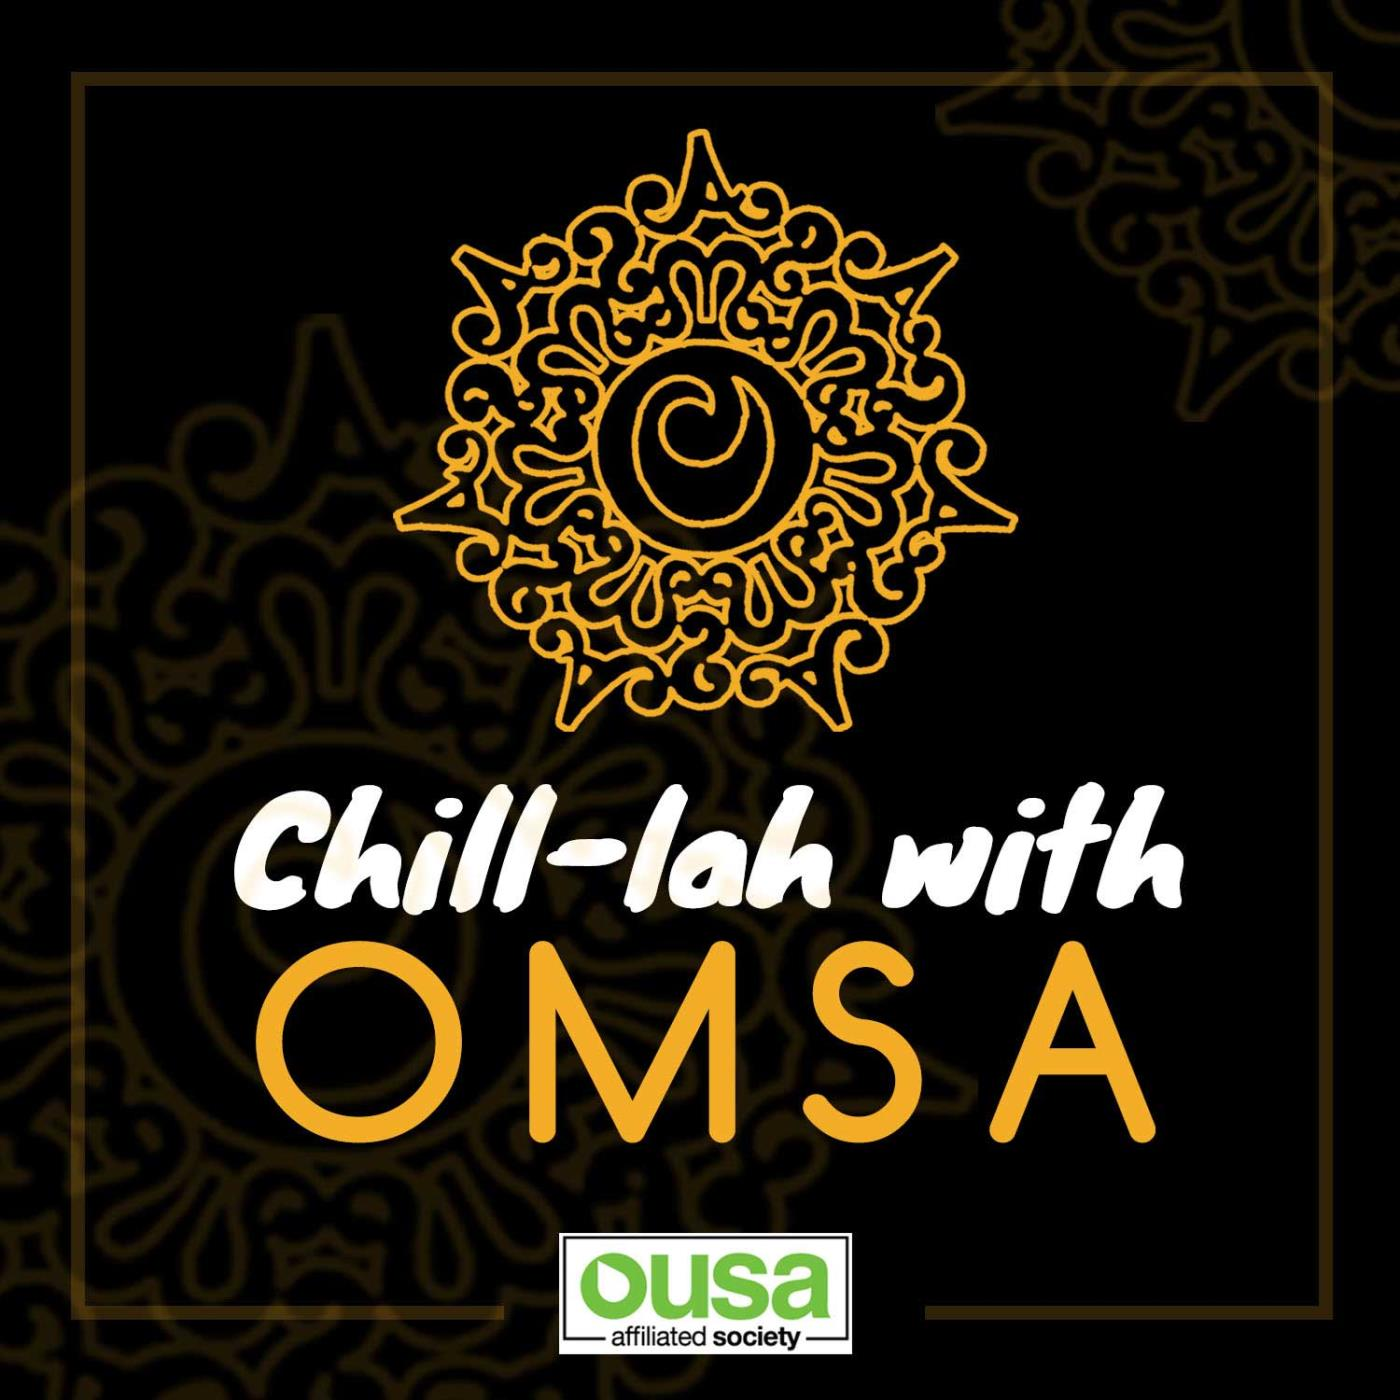 Chill-lah with OMSA